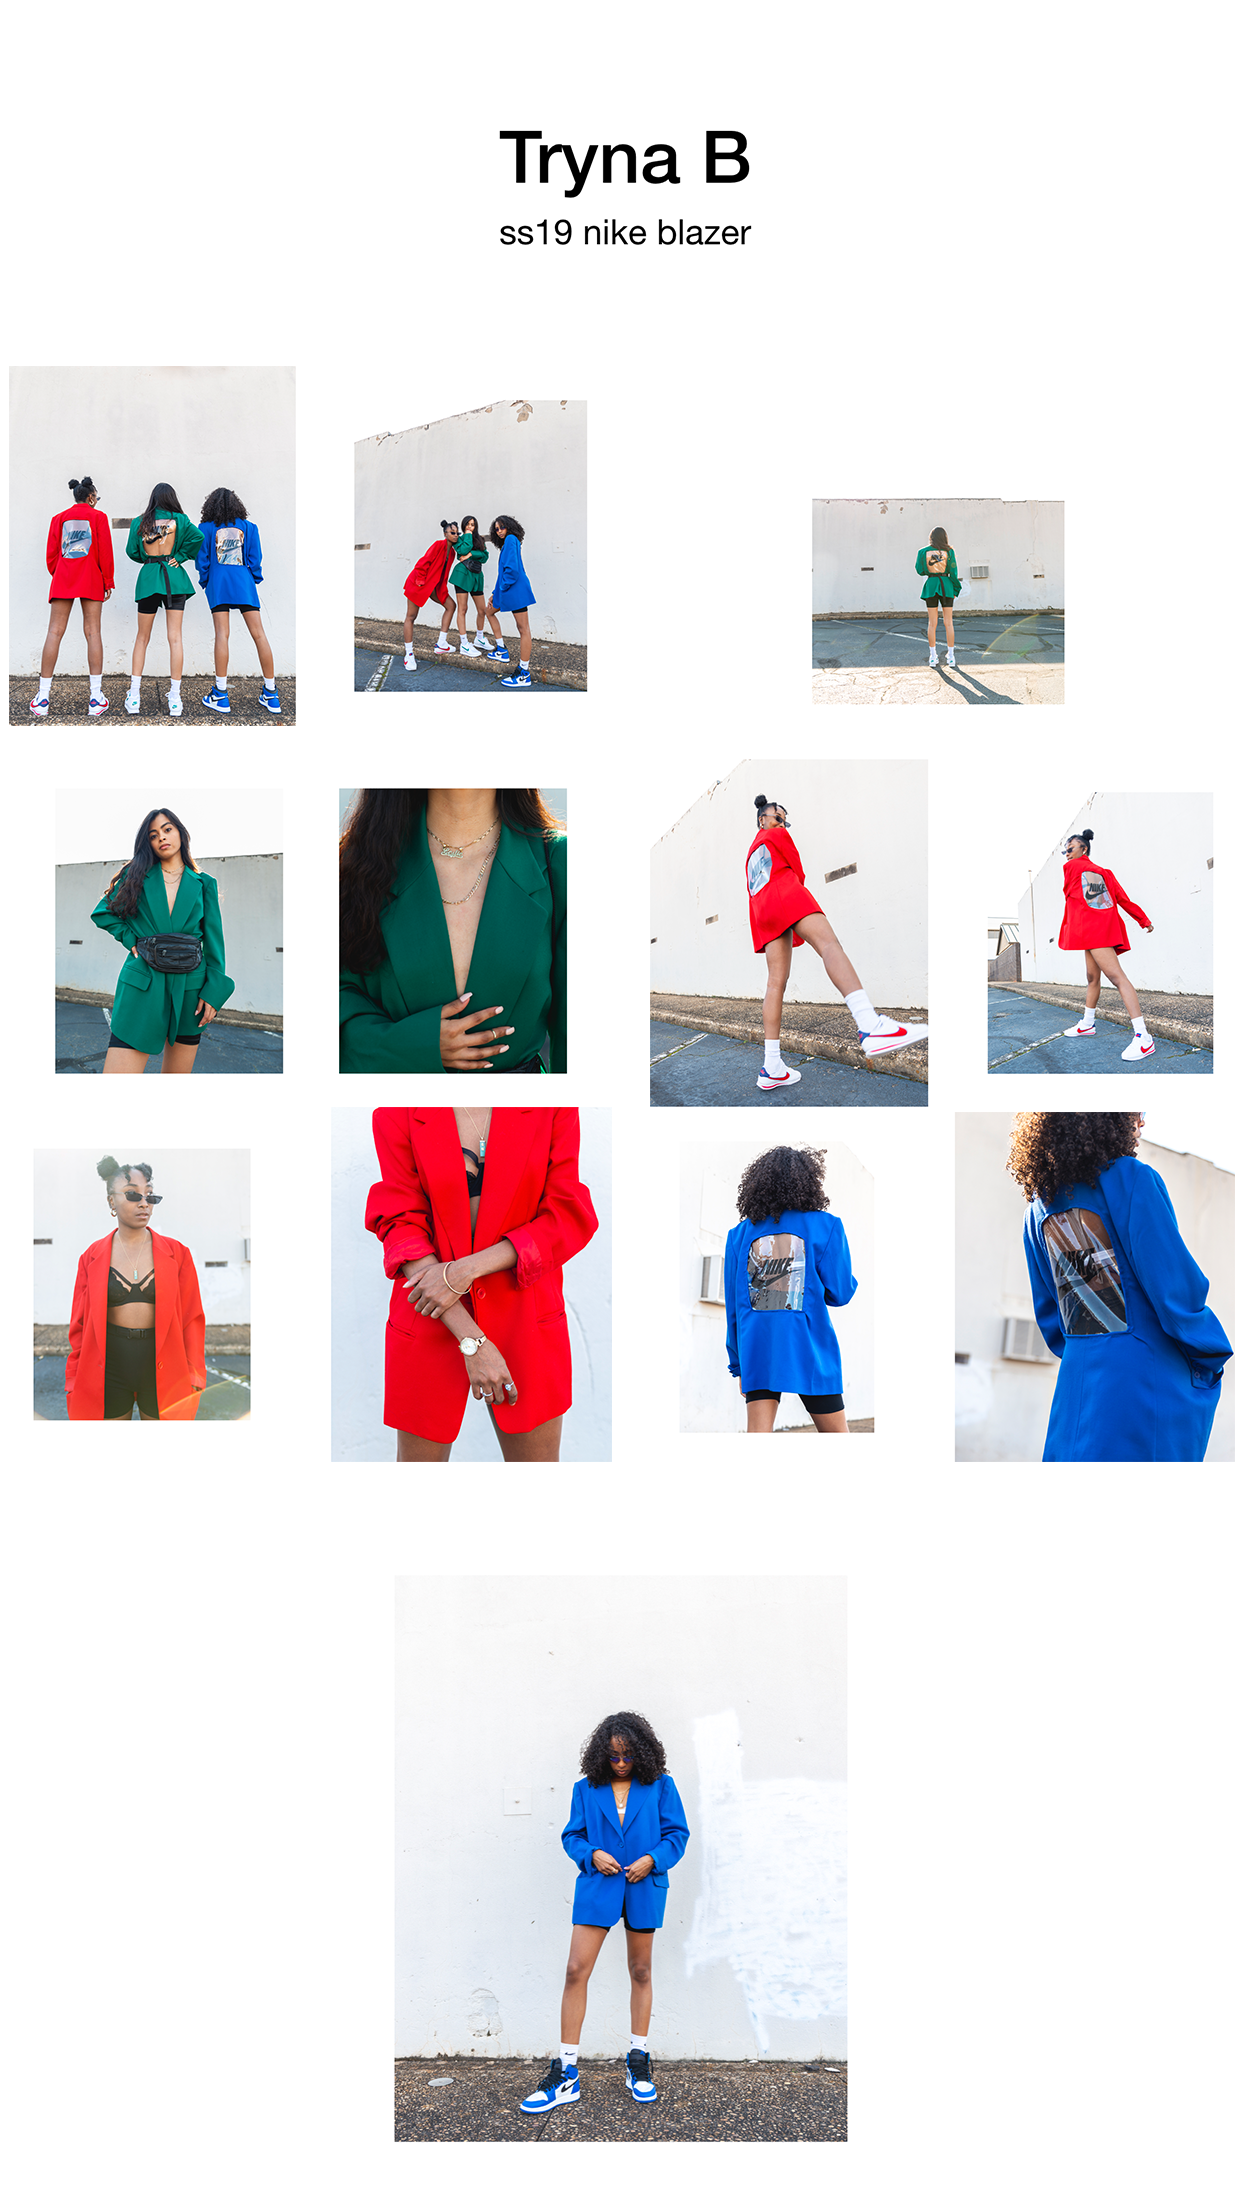 Look book created for Tryna B ss19 Drop - This look book was originally created in a slideshow style presentation so the viewer could see each and every piece of the collection and how it could be styled.